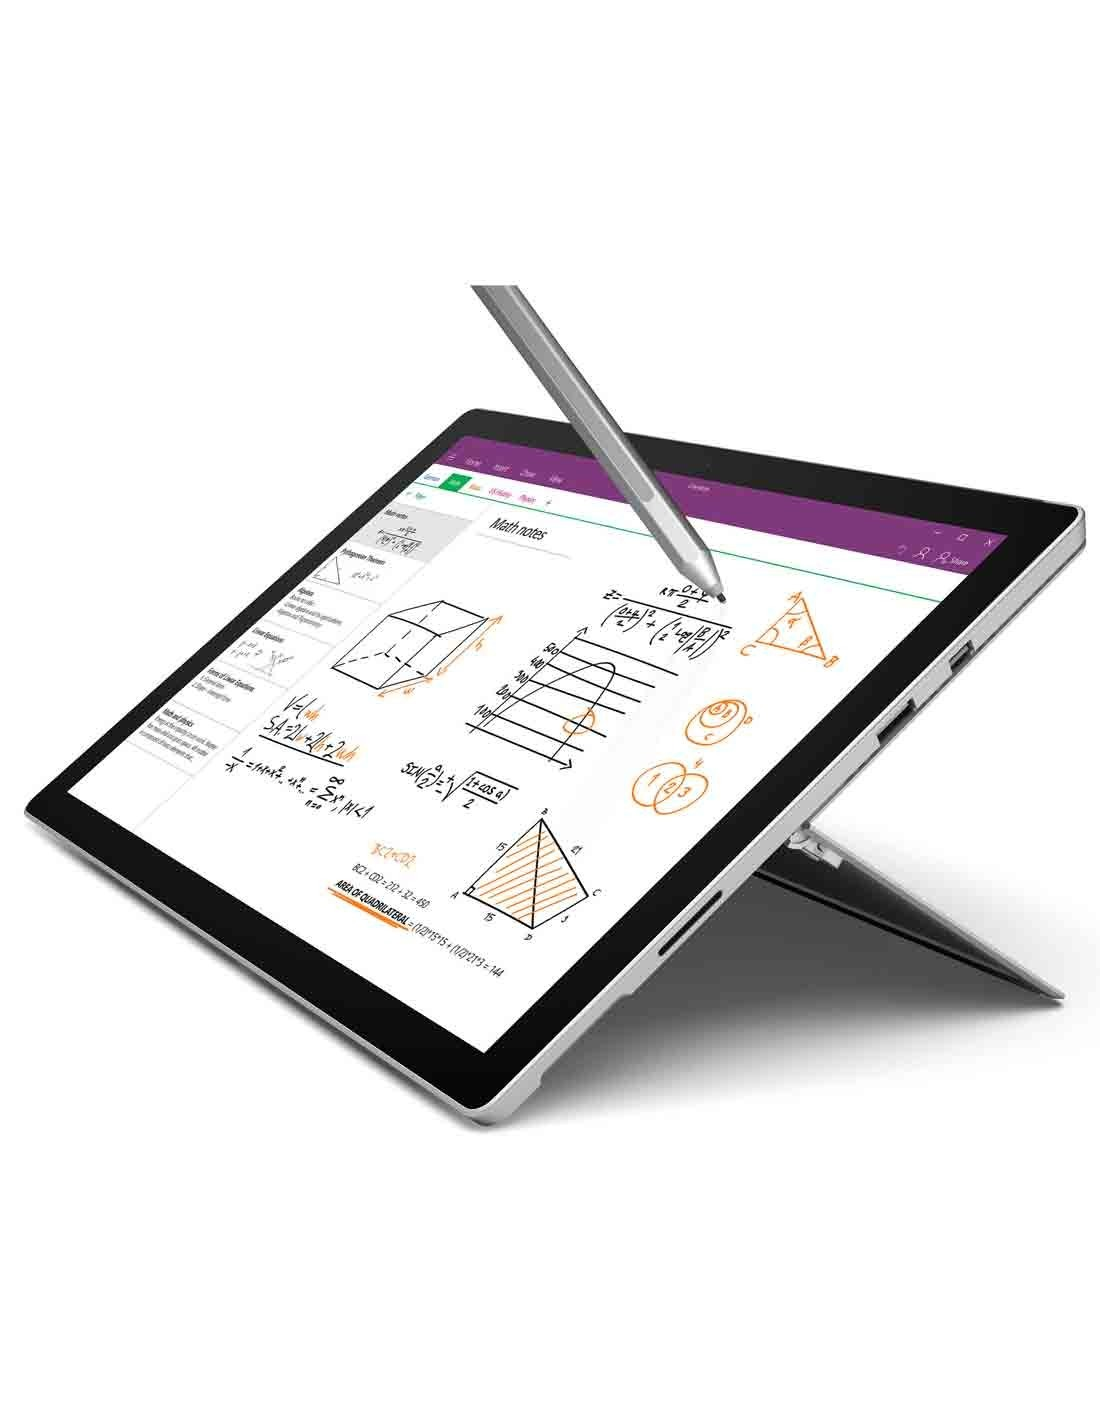 Microsoft Surface Pro 4 Intel Core i7 16GB Memory 1TB SSD Buy Online at a Cheap Price in Dubai